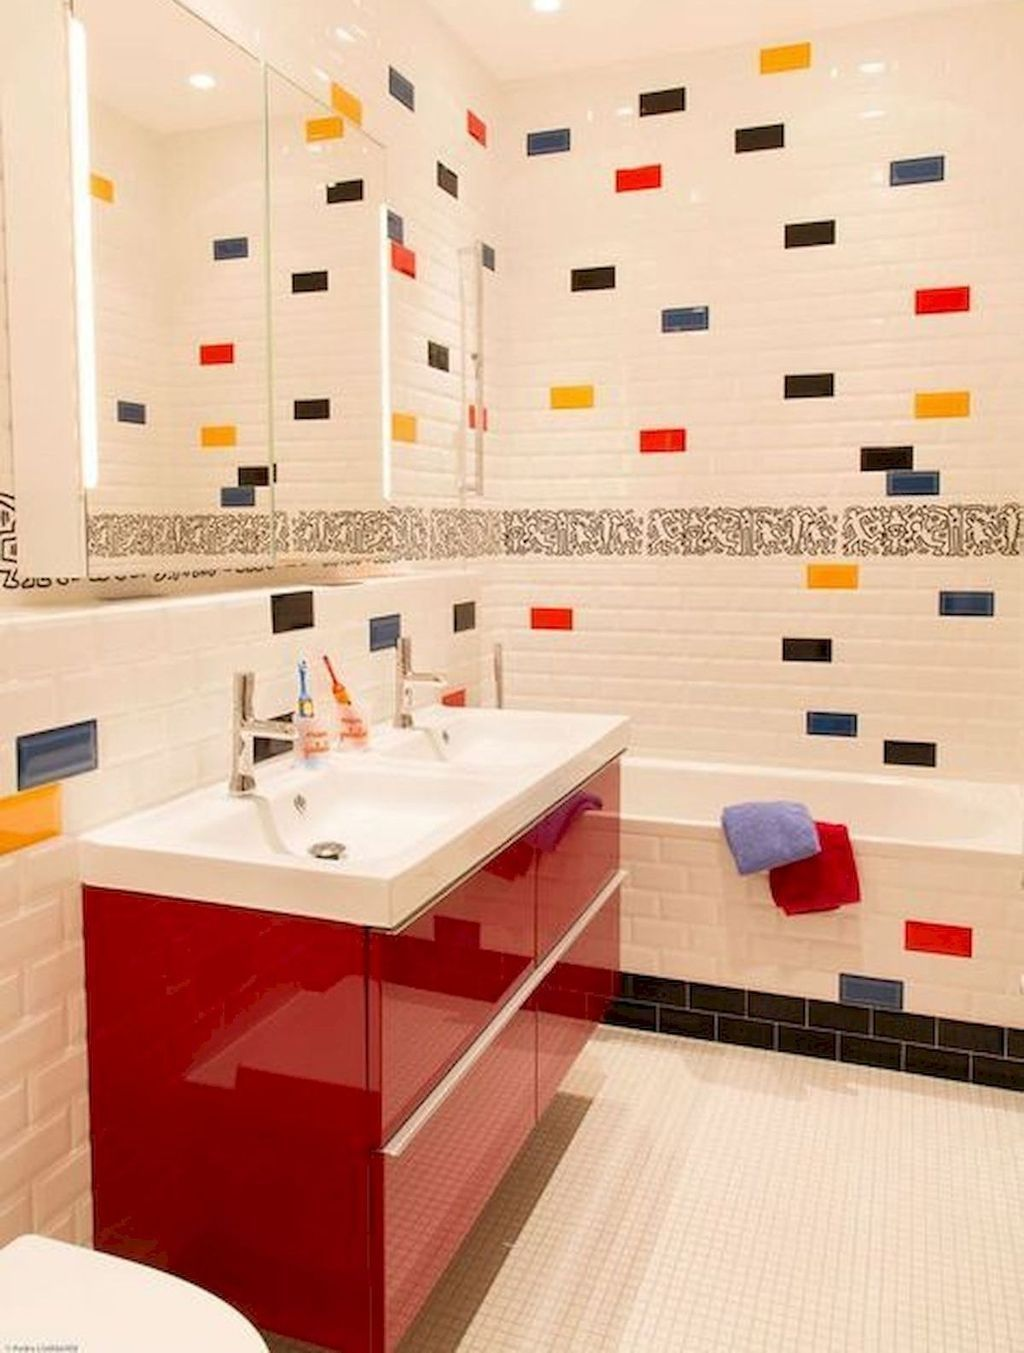 82 colorful tile ideas in 2021